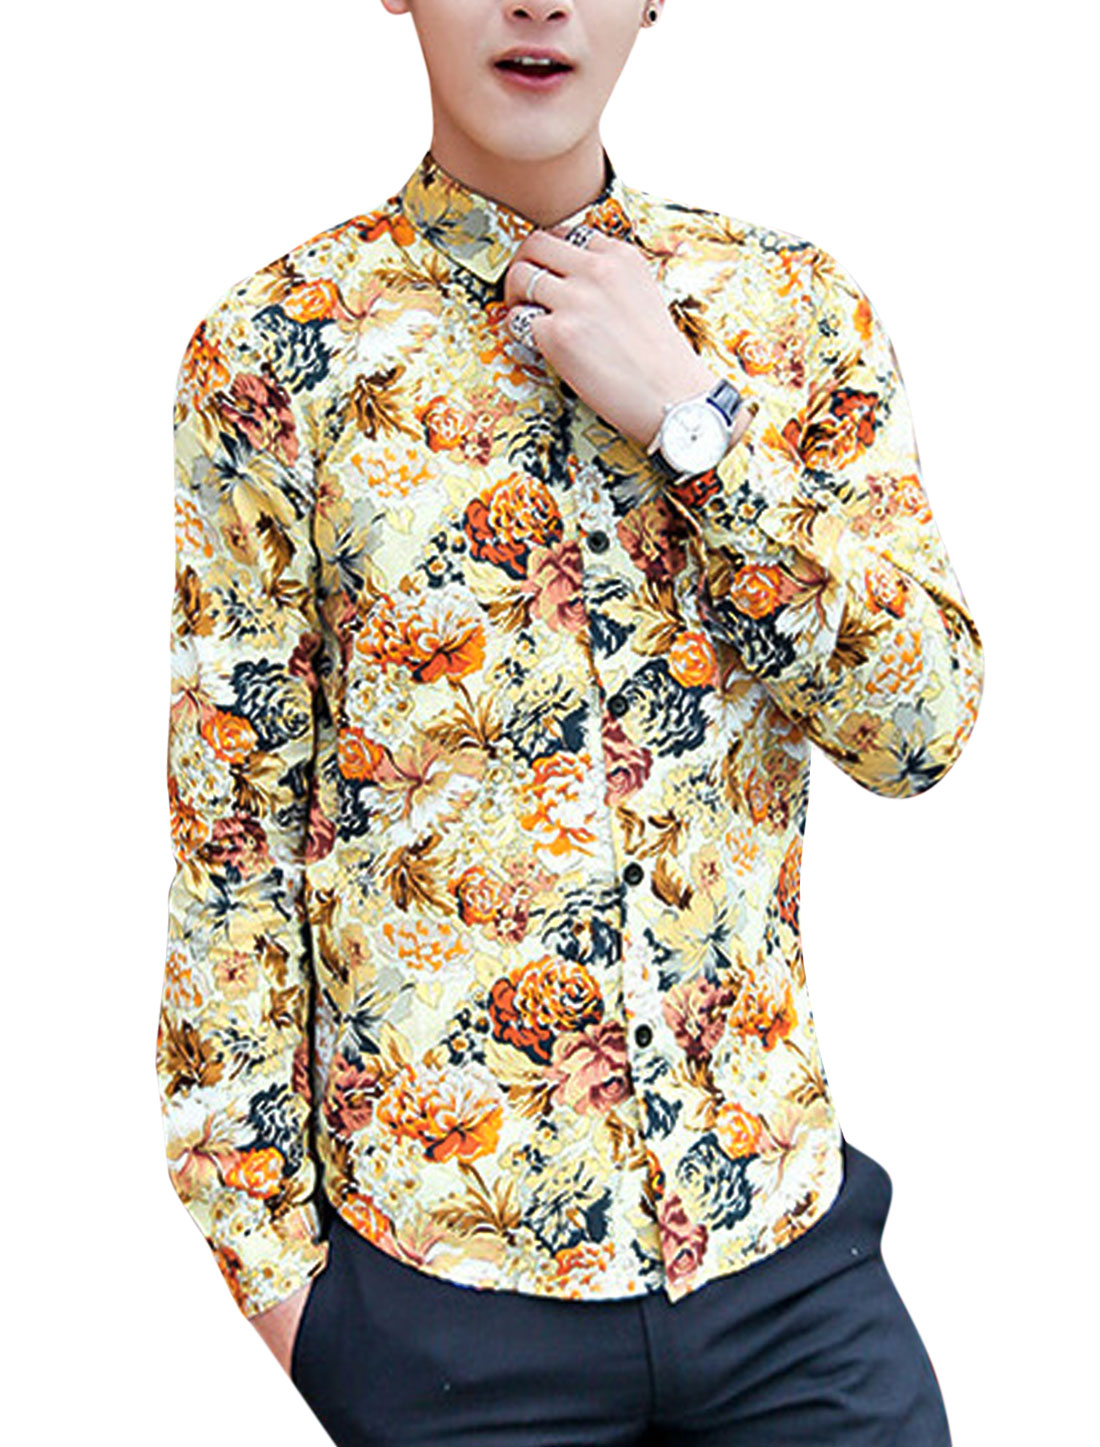 Men Newly Round Hem Buttoned Cuffs All-over Flower Pattern Shirt Yellow Brown M